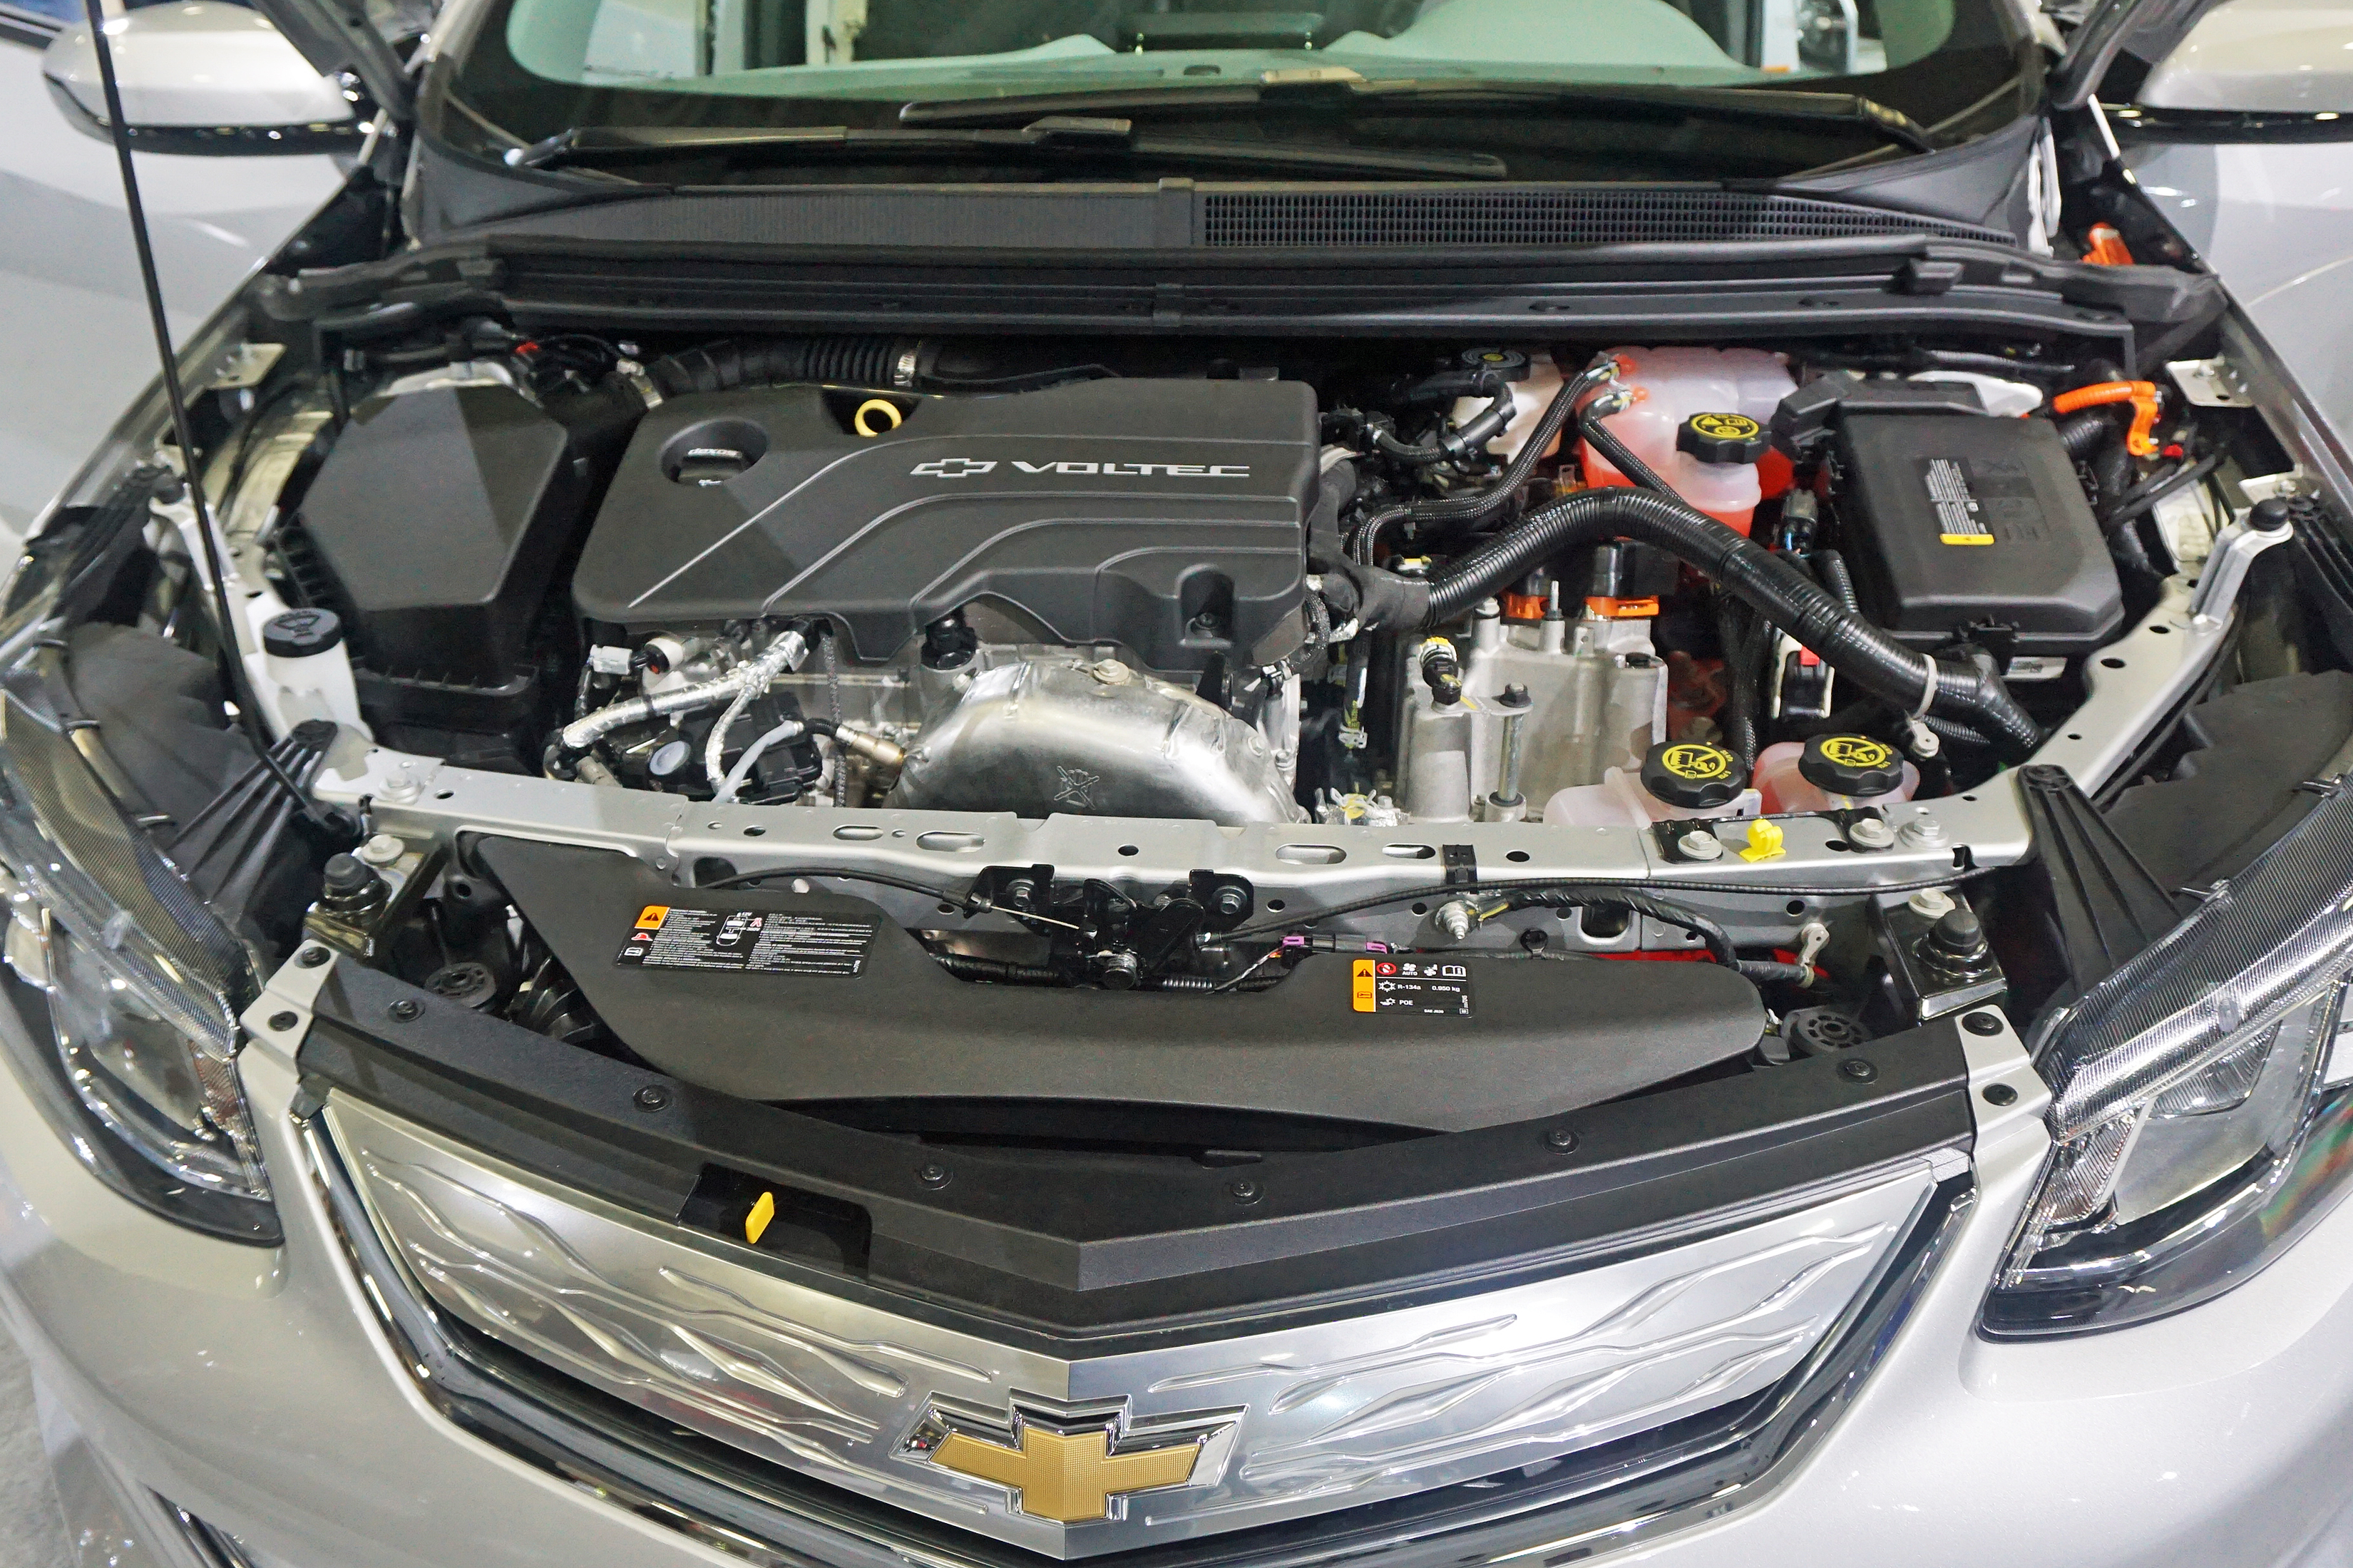 chevrolet volt second generation voltec 1 5l gasoline powered engine left and power inverter on top of the traction electric motor right